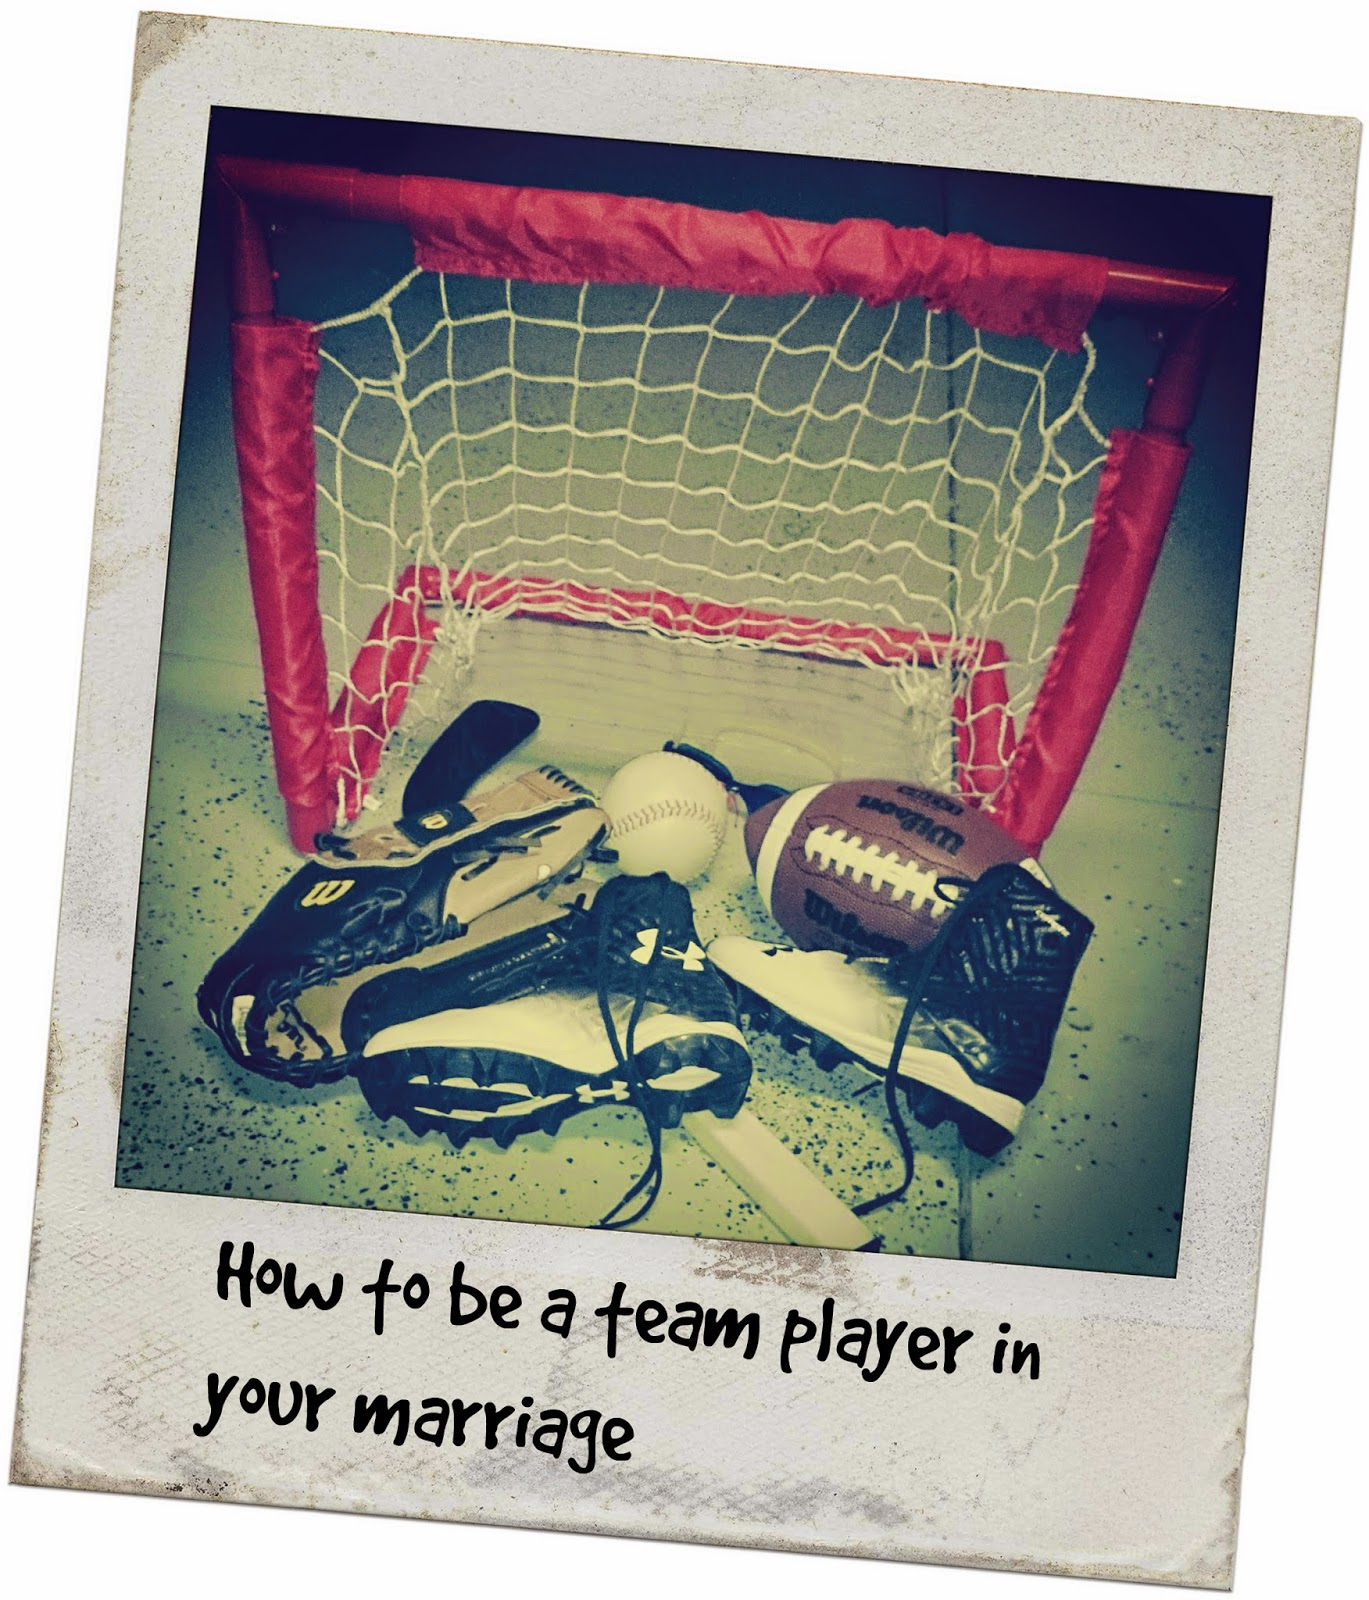 http://raisingsamuels.blogspot.com/2014/05/how-to-be-team-player-in-your-marriage.html